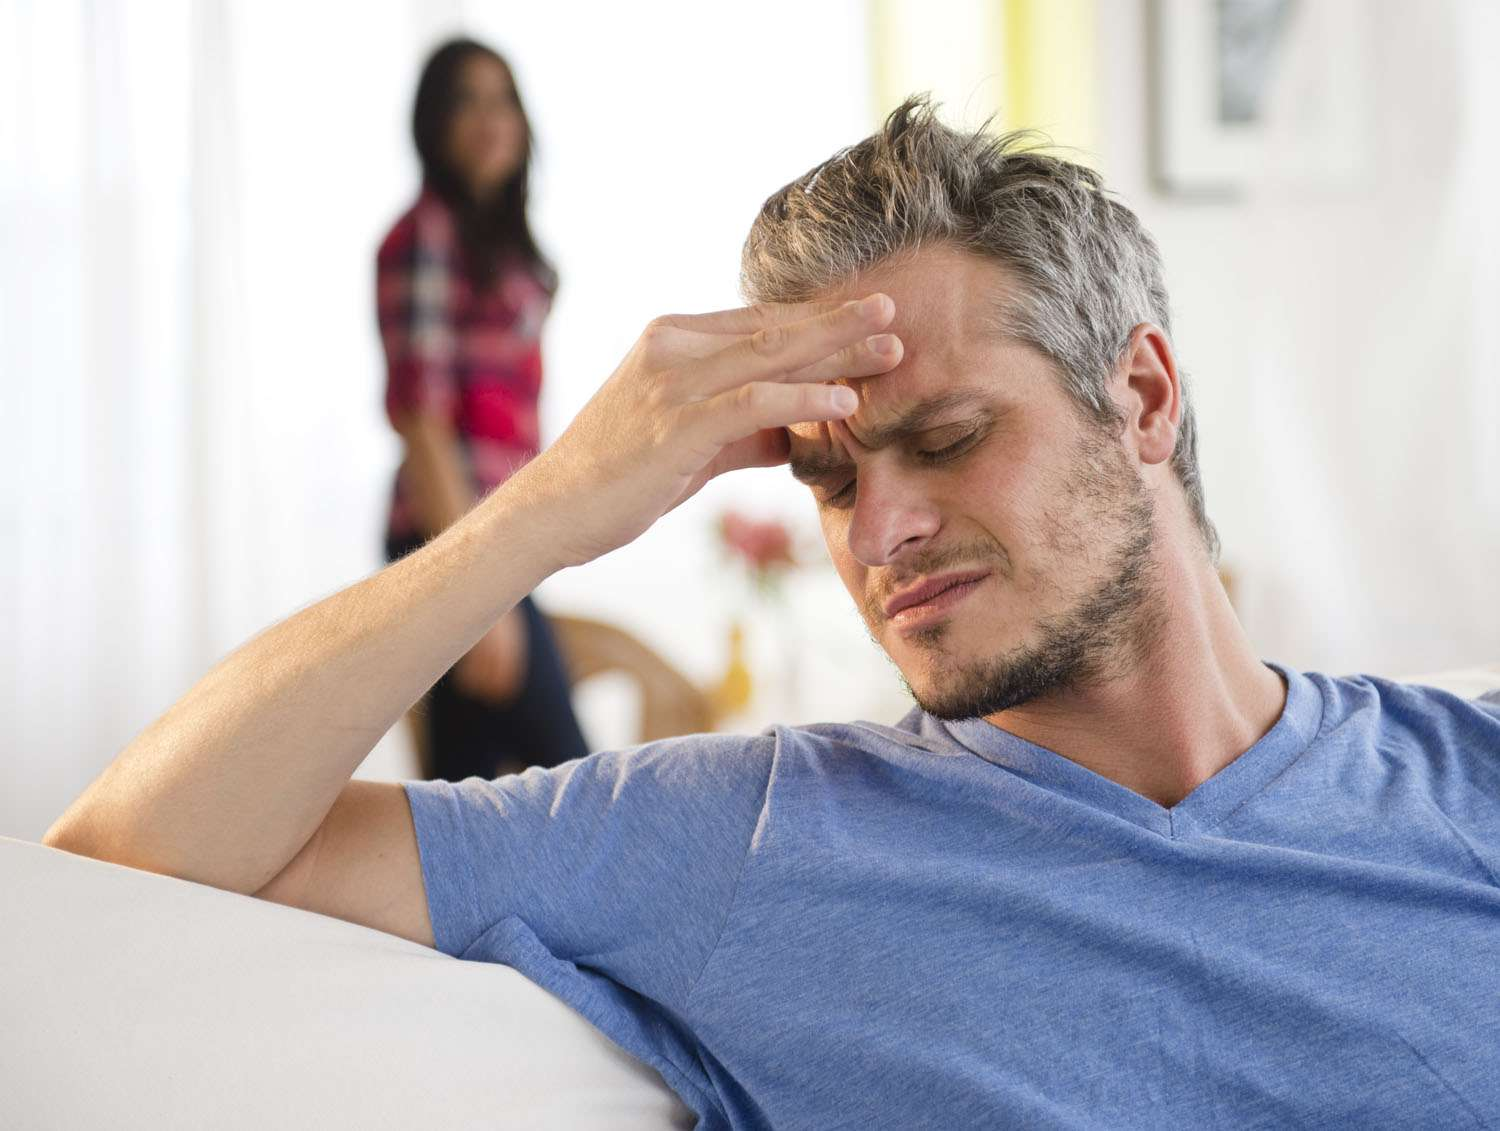 Man sitting on couch with headache